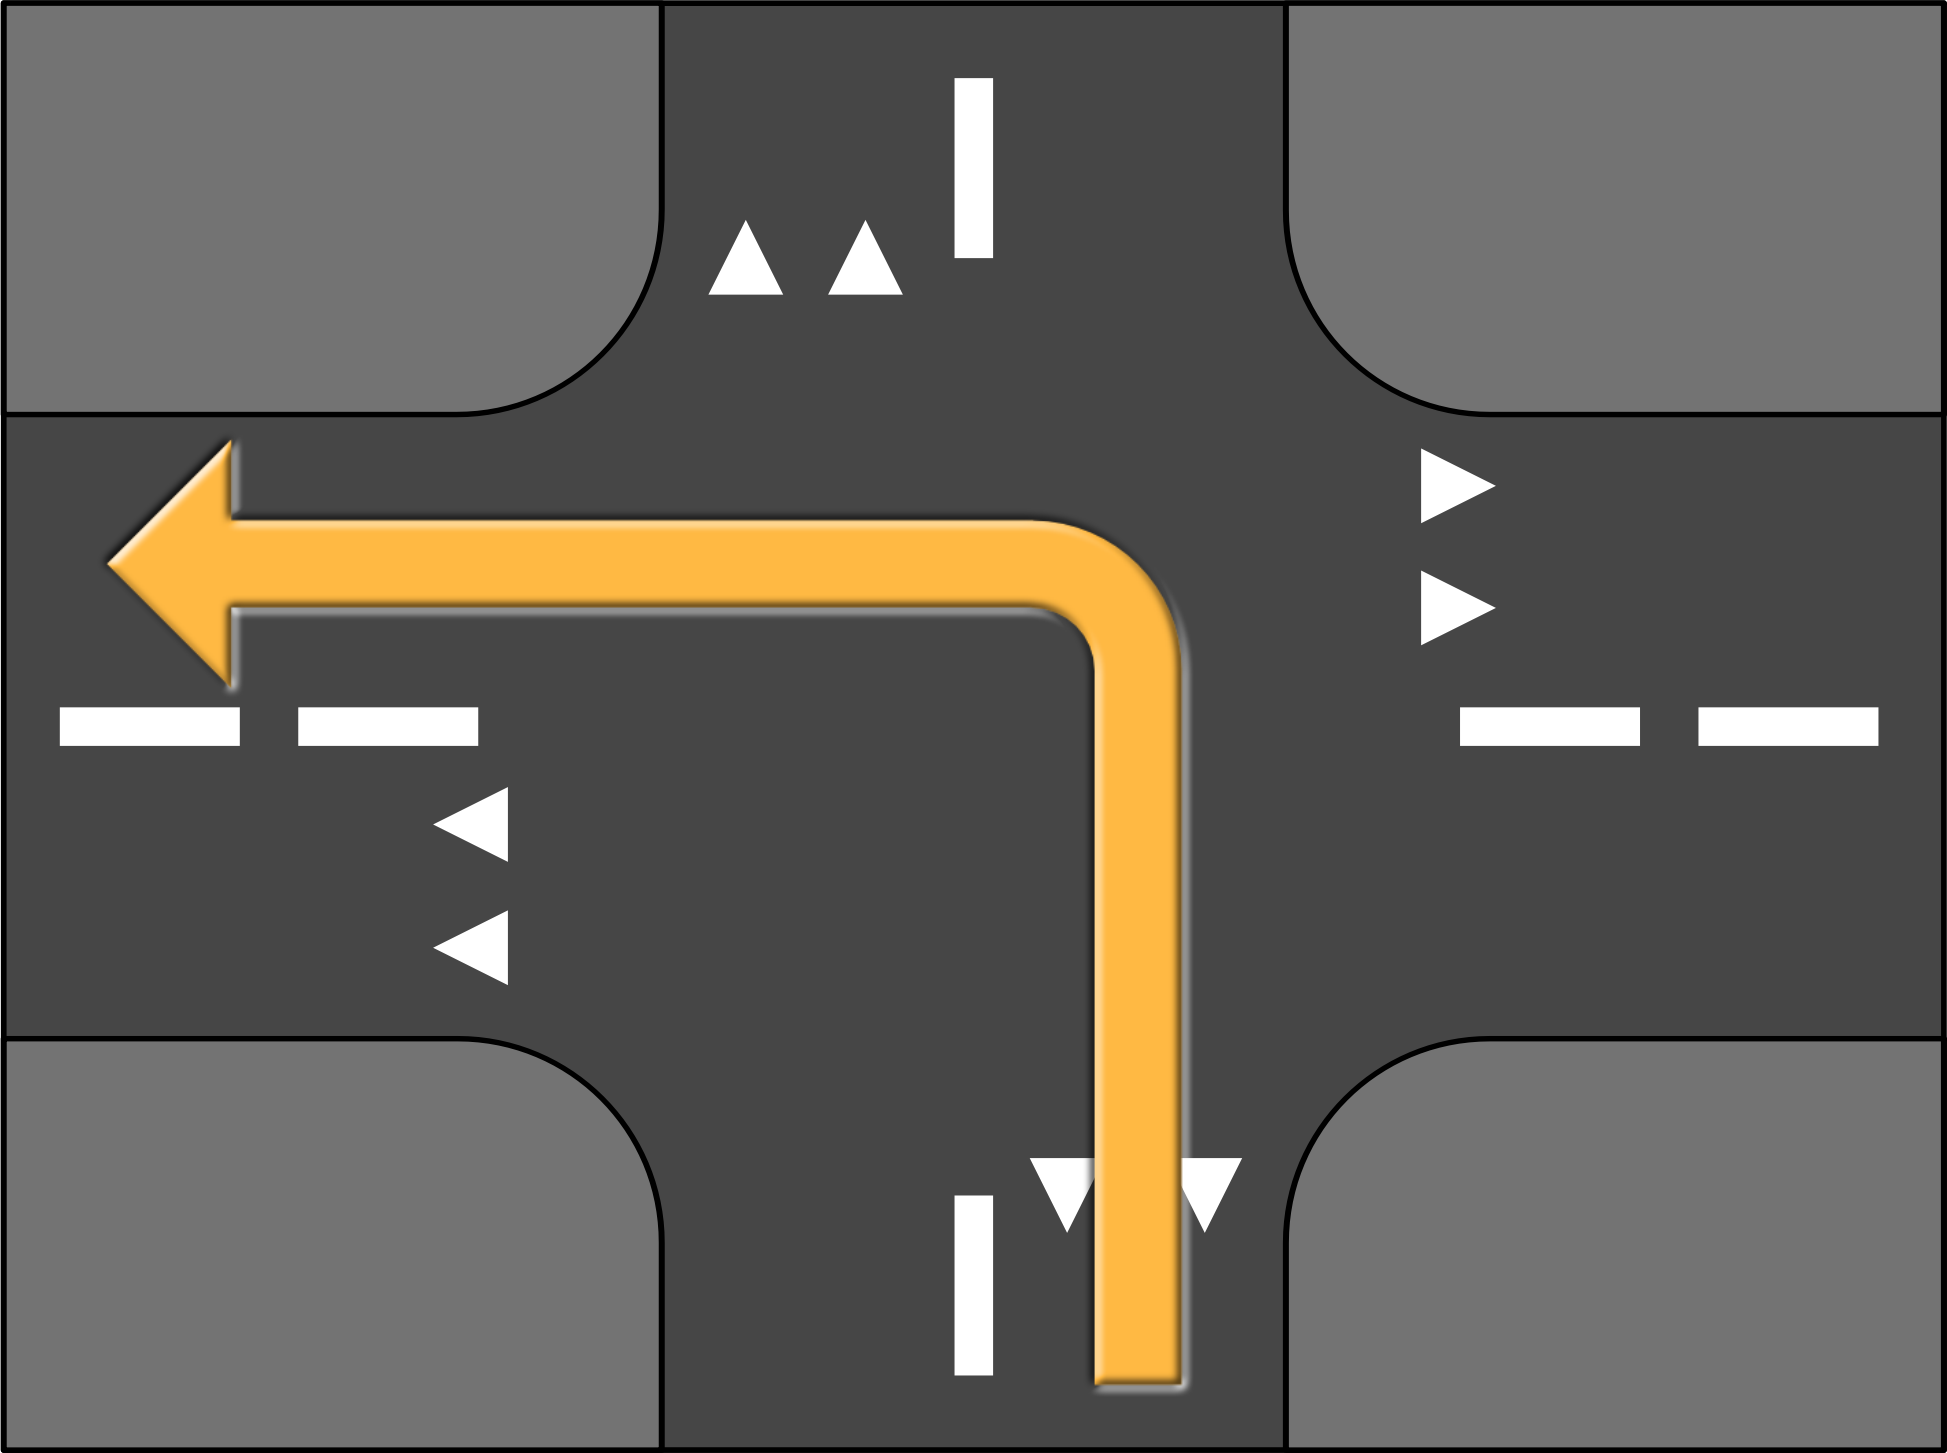 Road Crossing Turn Left by MaSc